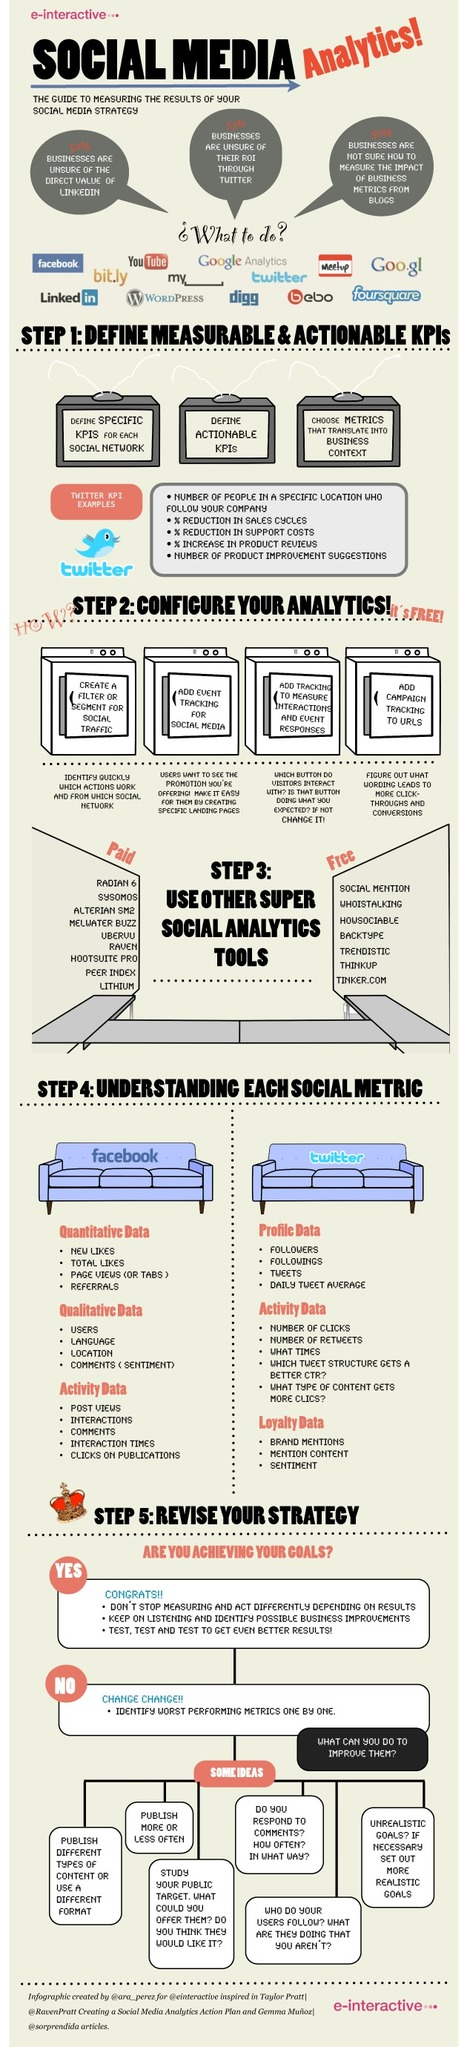 Measure Your Social Media Strategy with this Great Guide [Infographic] | M & S | Scoop.it